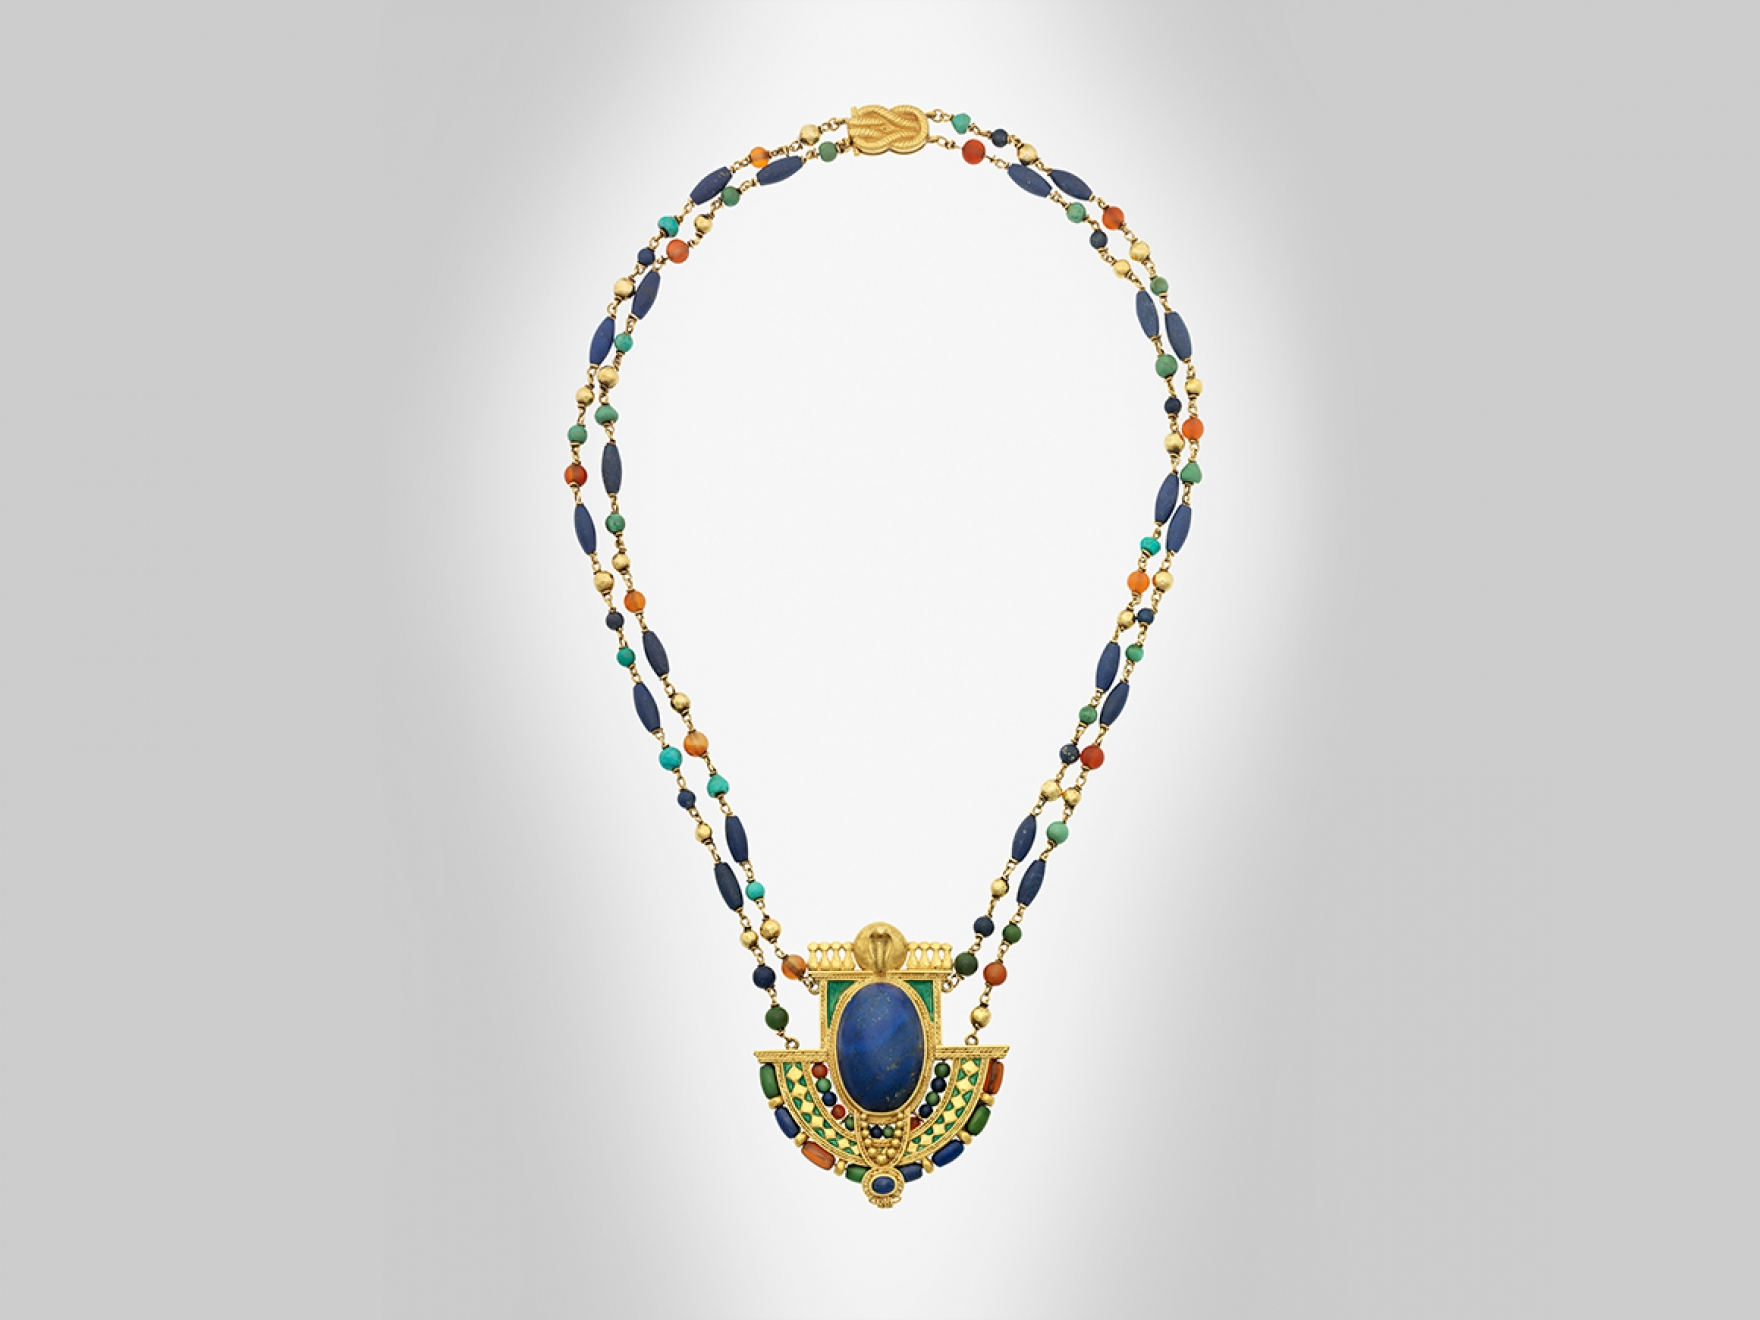 Louis Comfort Tiffany, Egyptian revival necklace made of Gold, lapis lazuli, amber, and turquoise.